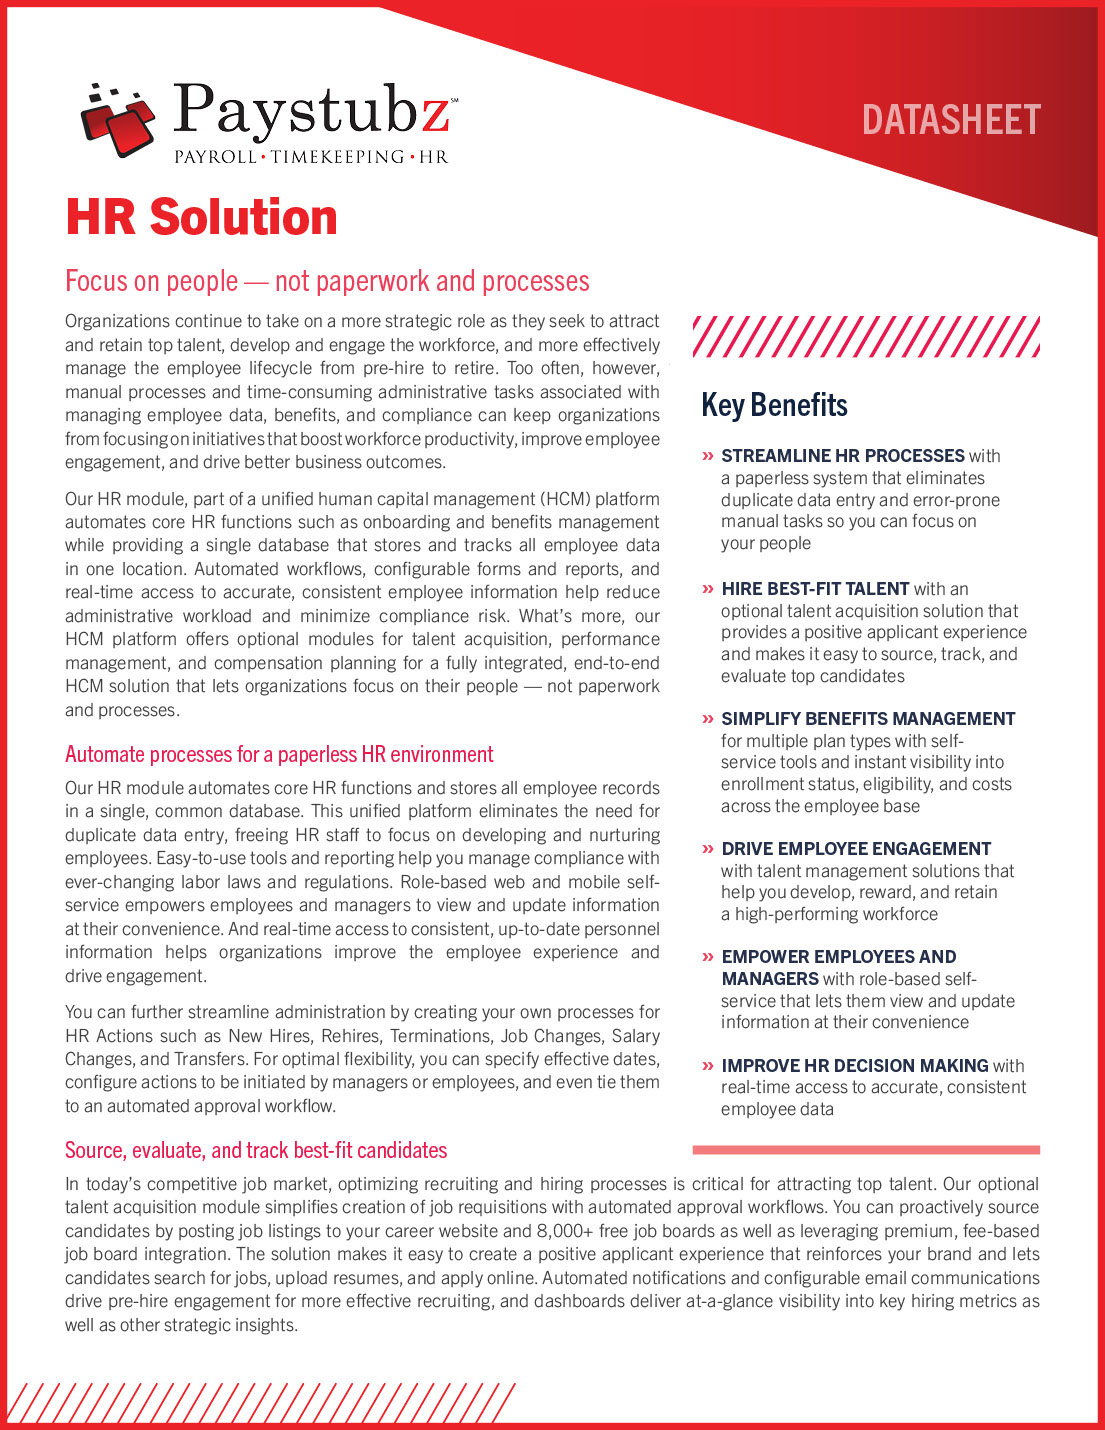 Paystubz HR Collateral Rebrand cover